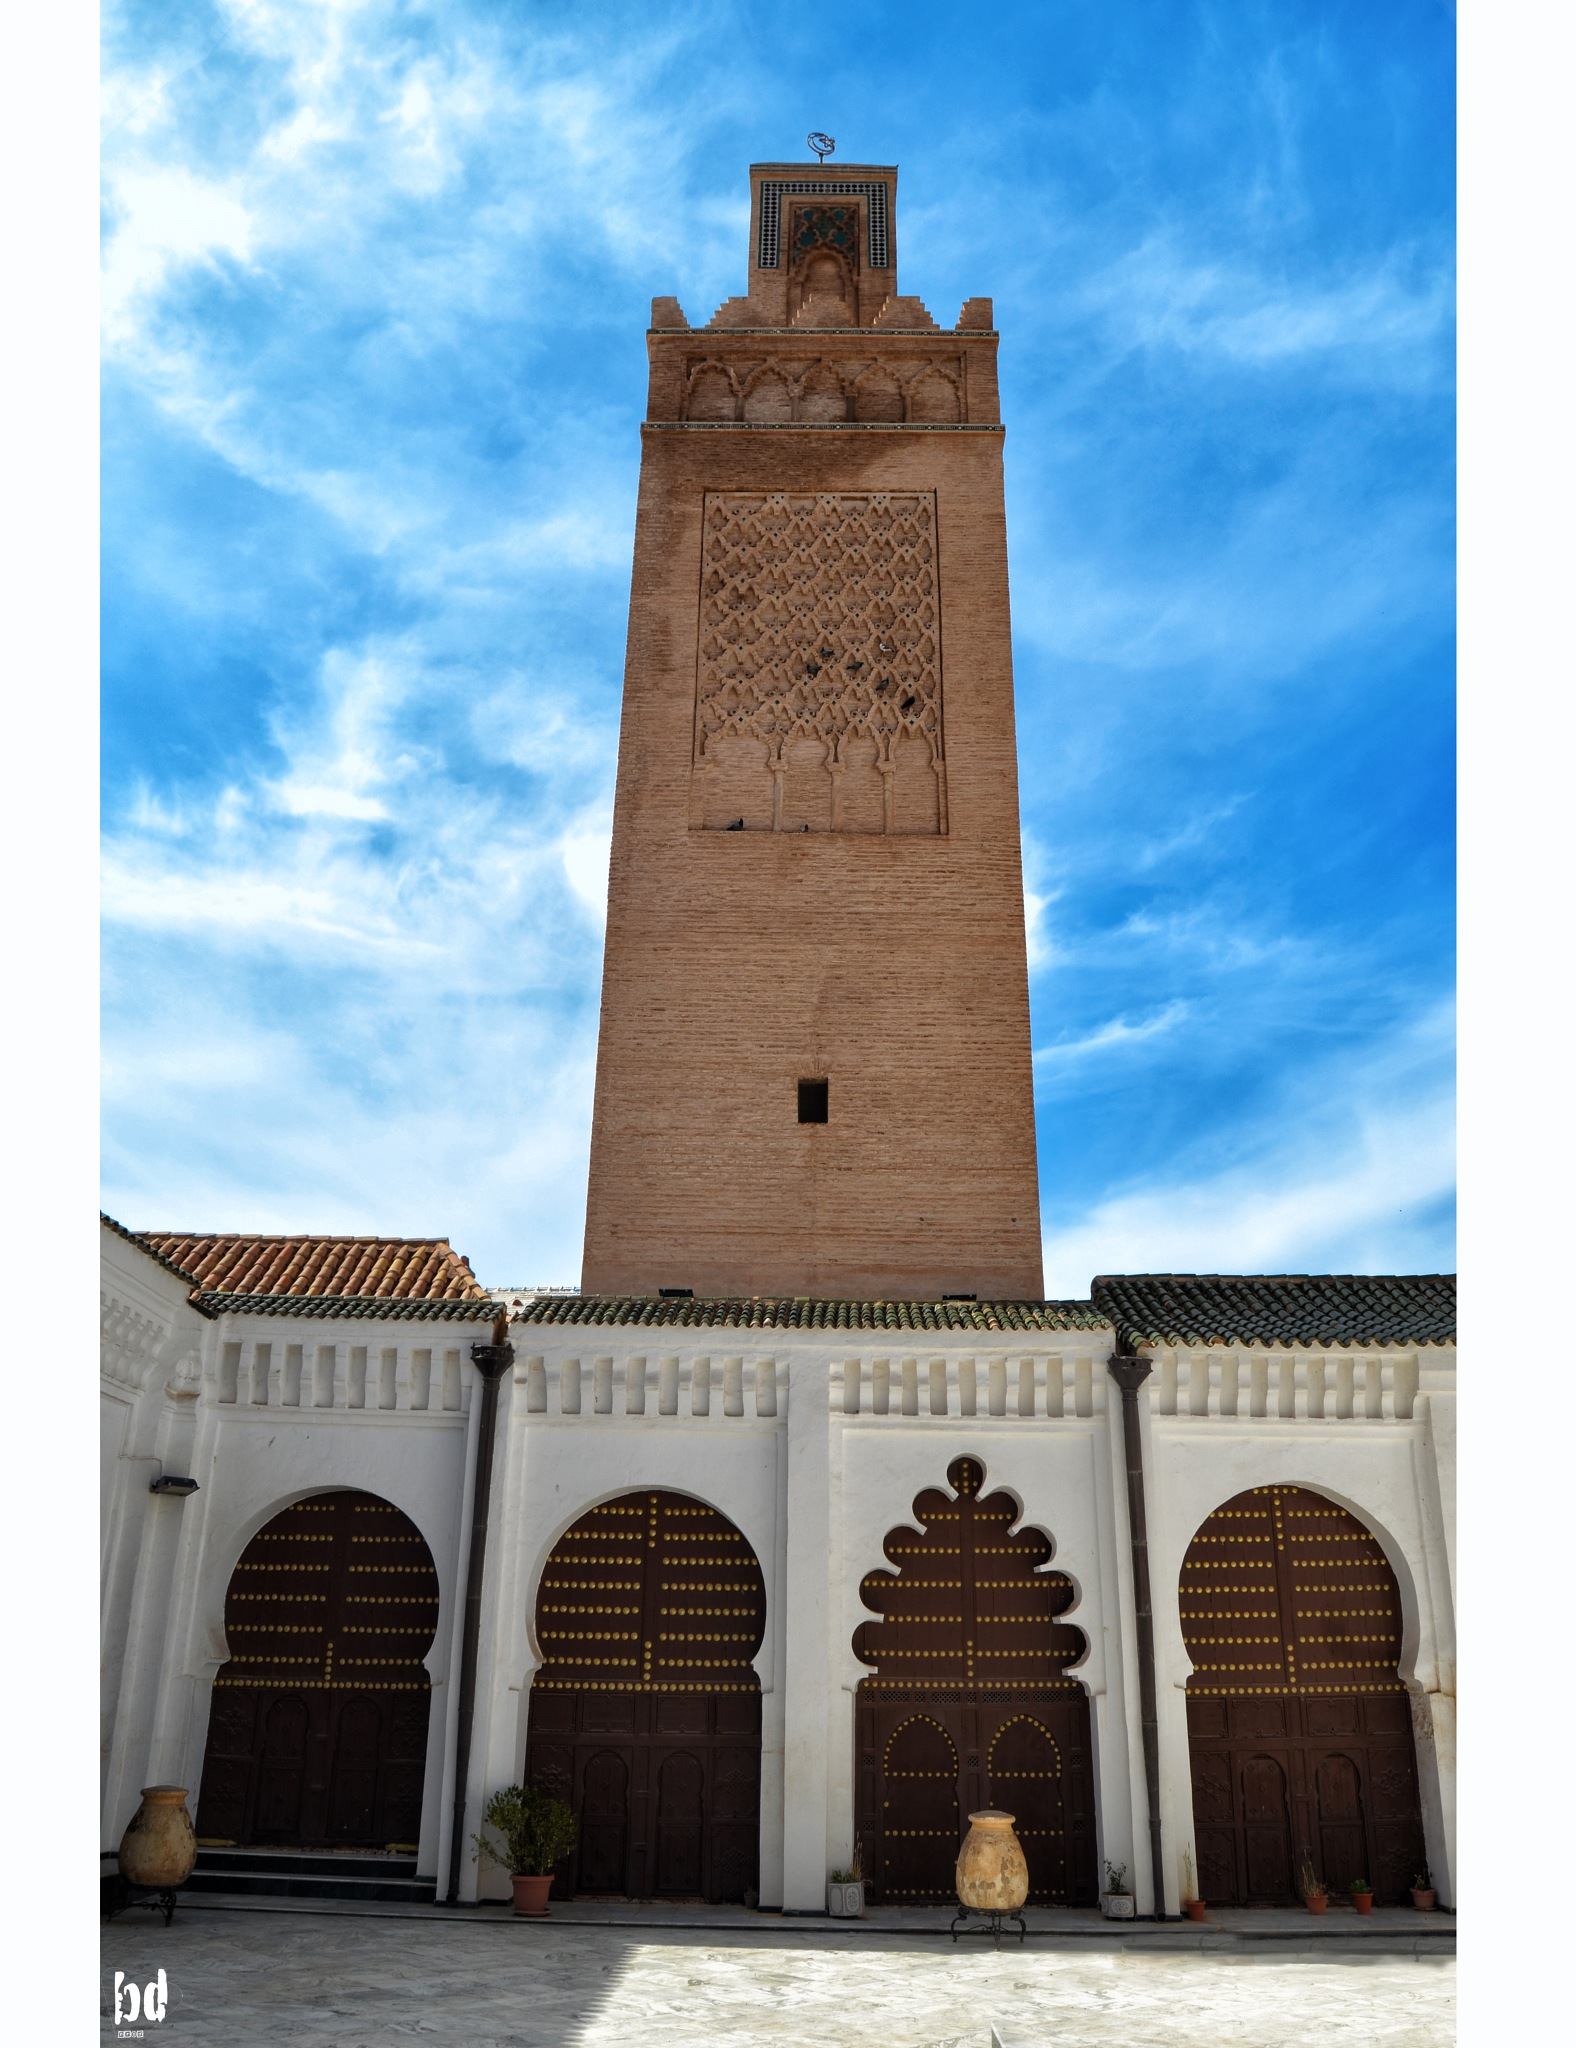 mosque 2 by rachad hamadou